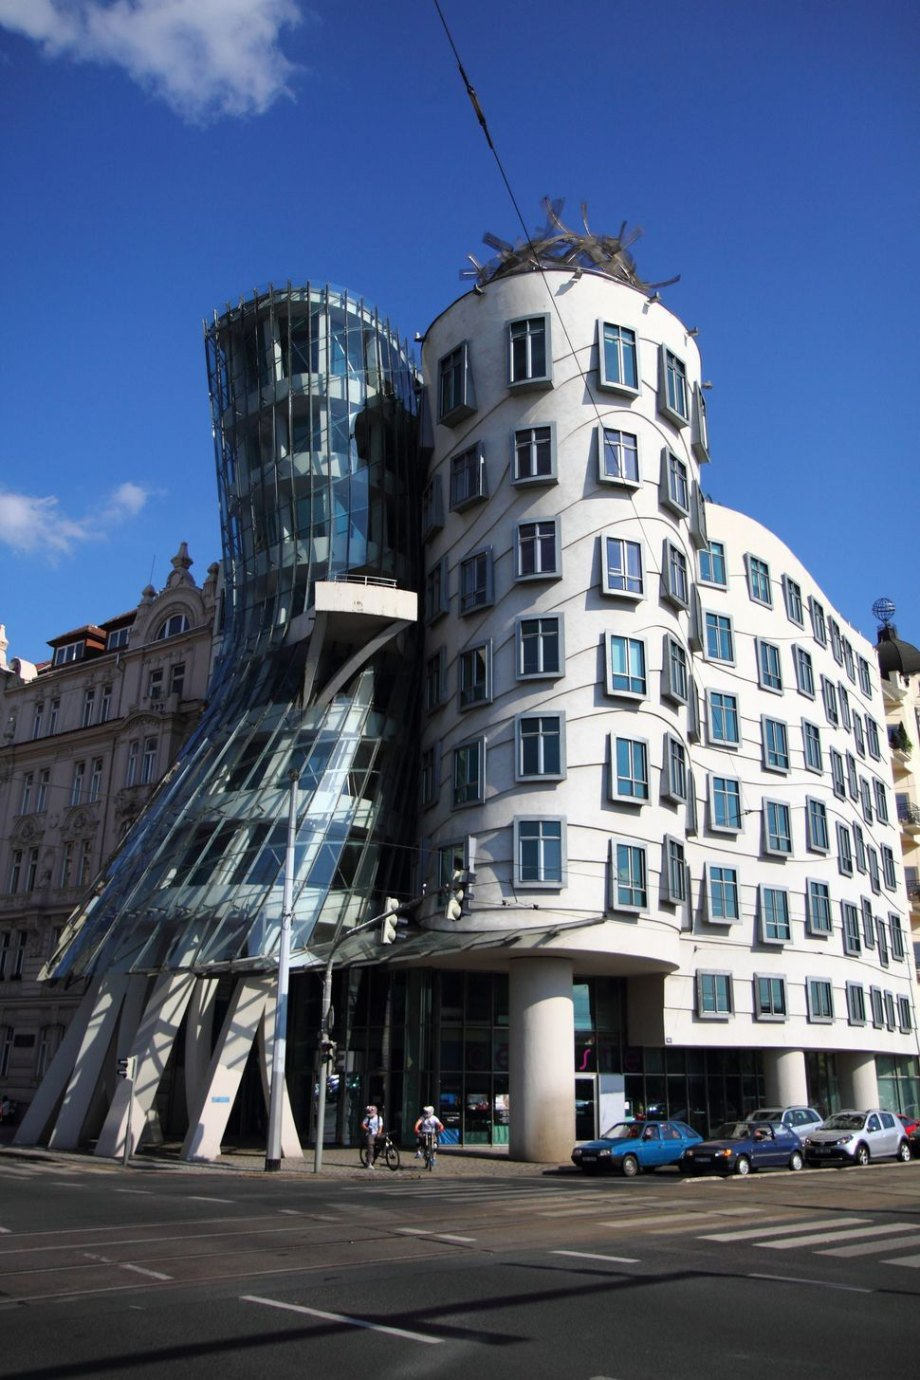 incredible buildings around the world that are works of